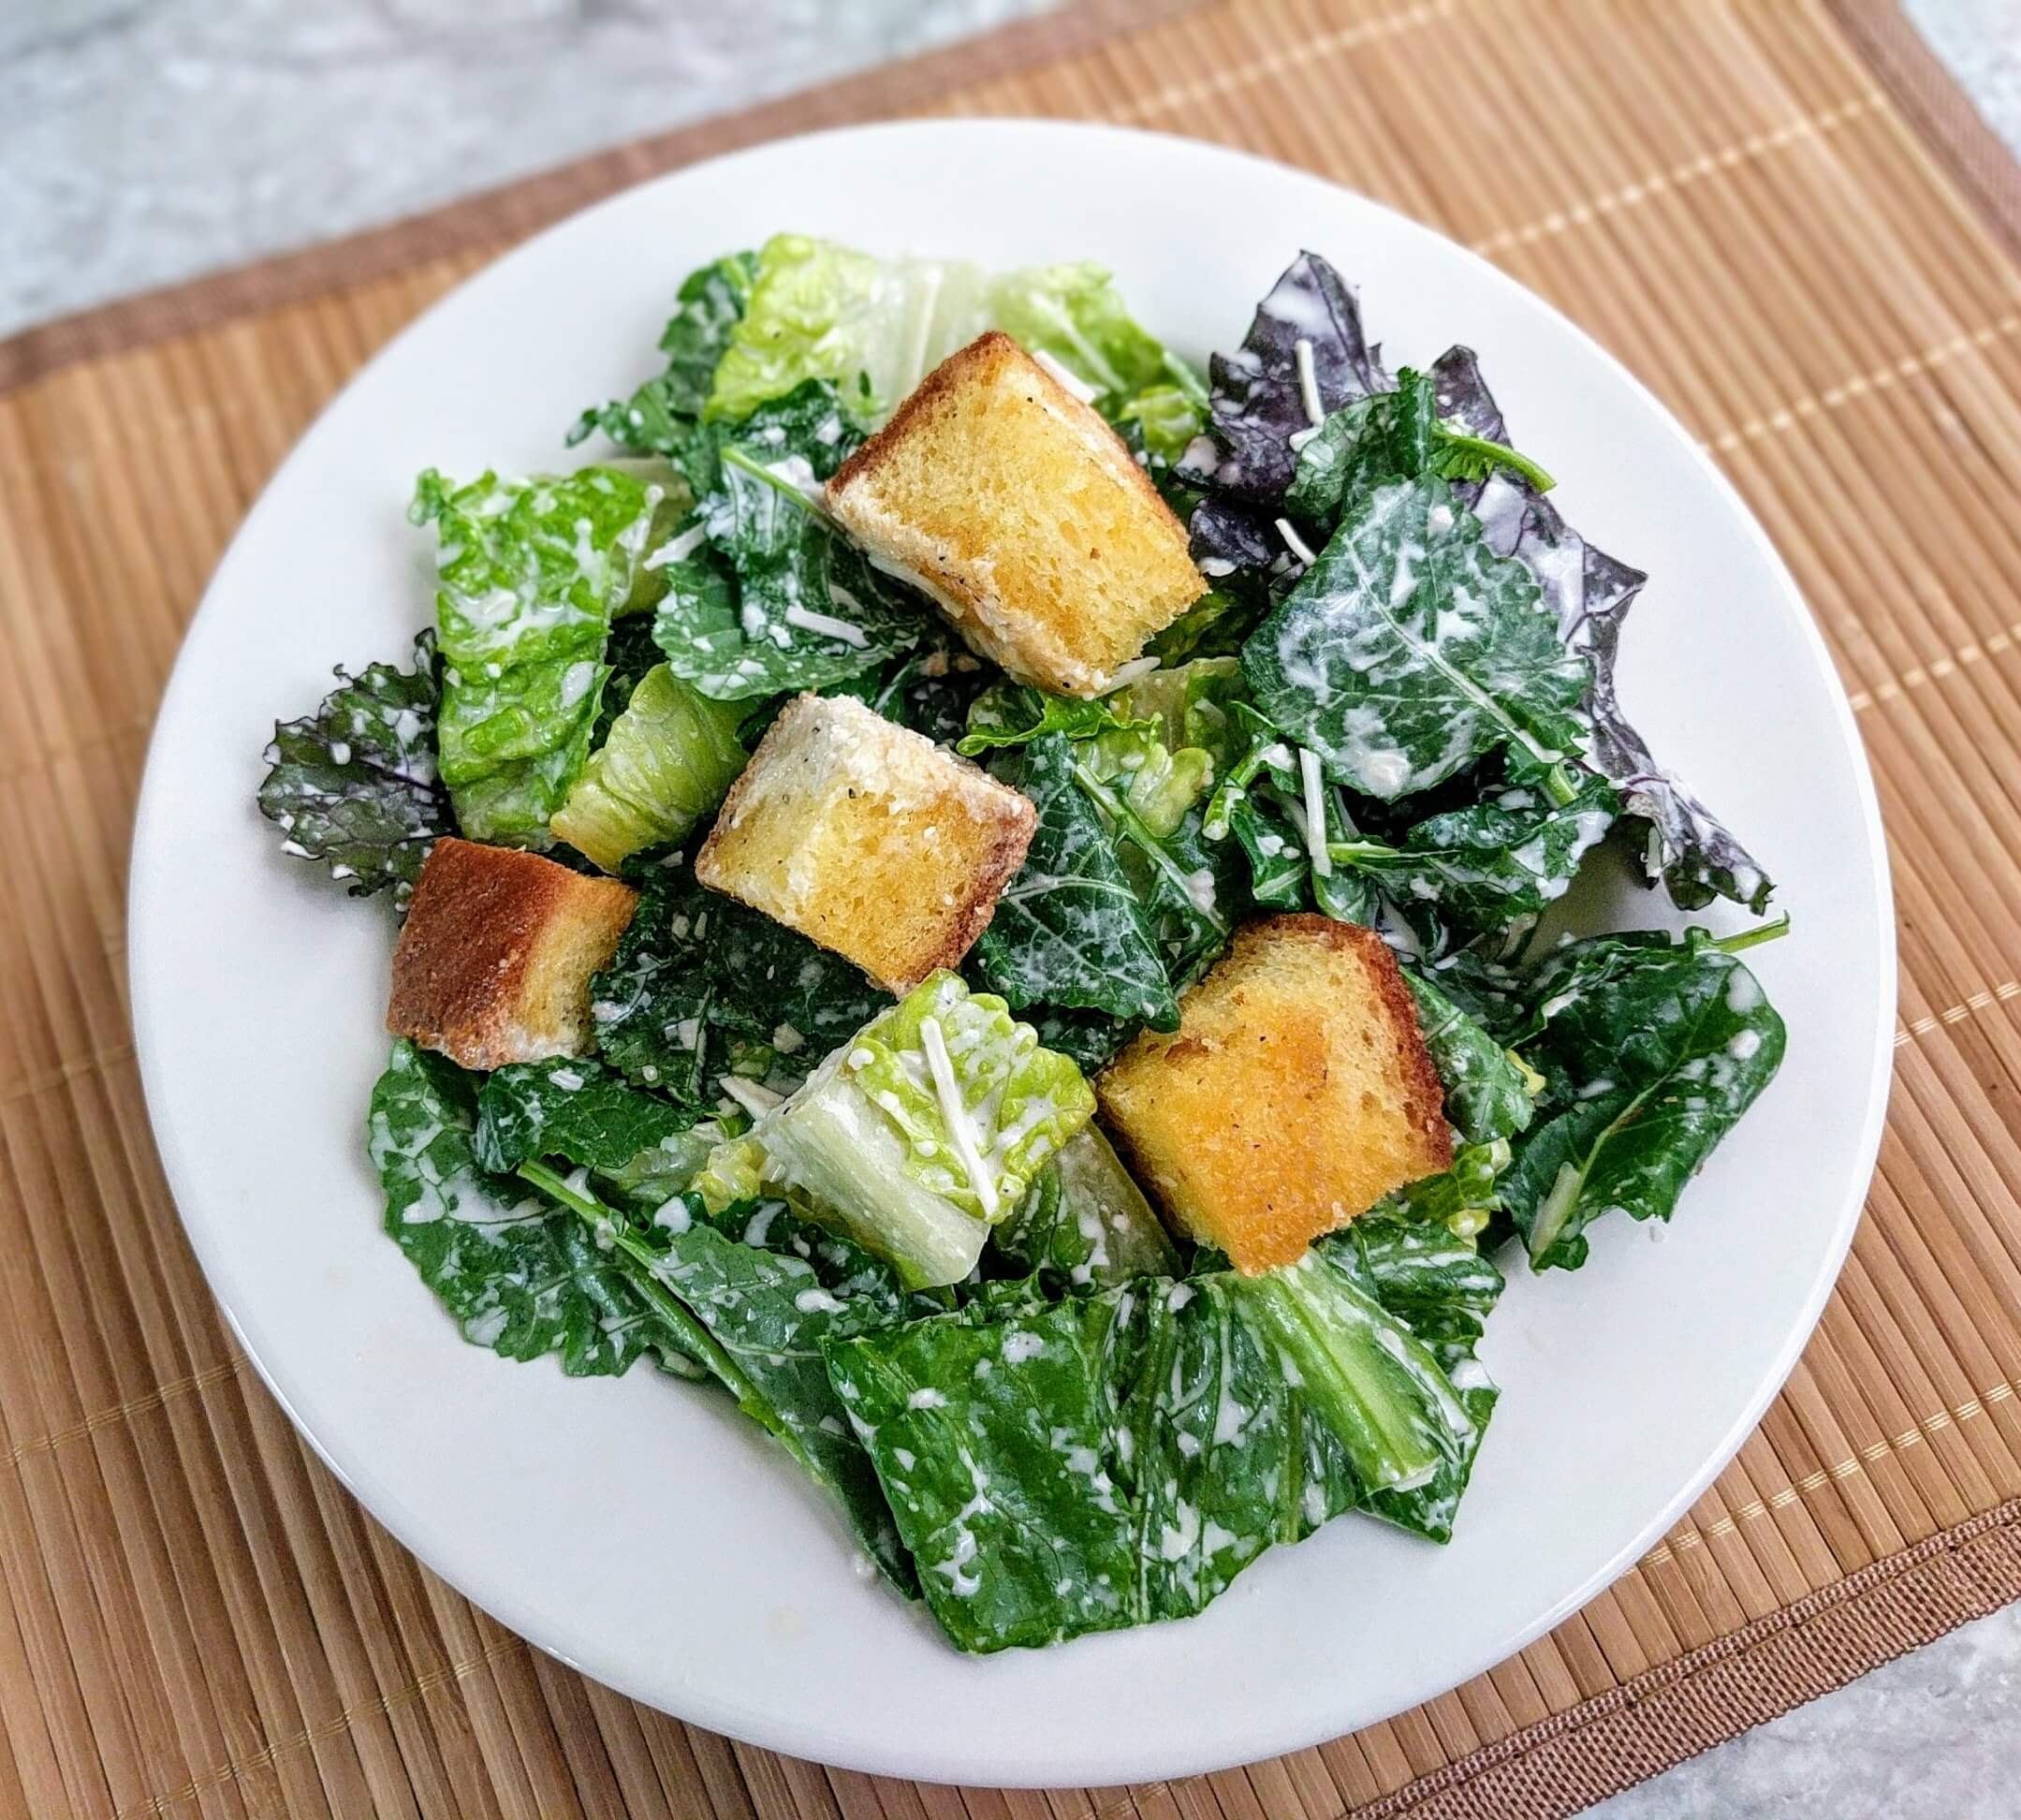 Crunchy Green Salad with Croutons Recipe Crunchy Green Salad with Croutons Recipe new photo